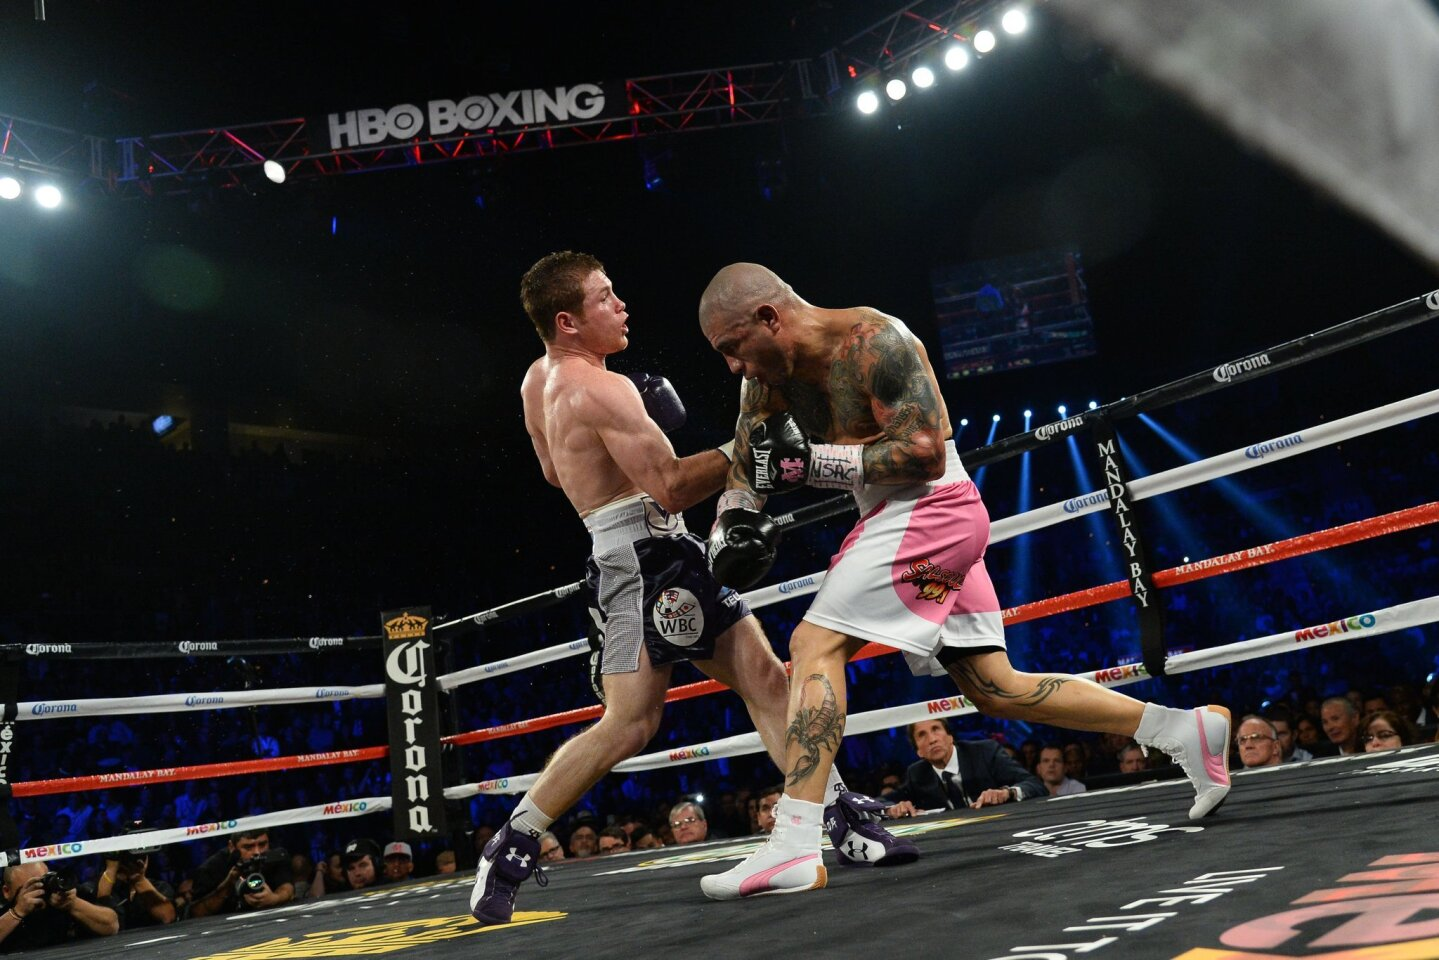 Canelo Alvarez (purple trunks) and Miguel Cotto (pink trunks) box during their WBC & Ring Magazine middleweight boxing title fight at Mandalay Bay Events Center. Alvarez won via unanimous decision.